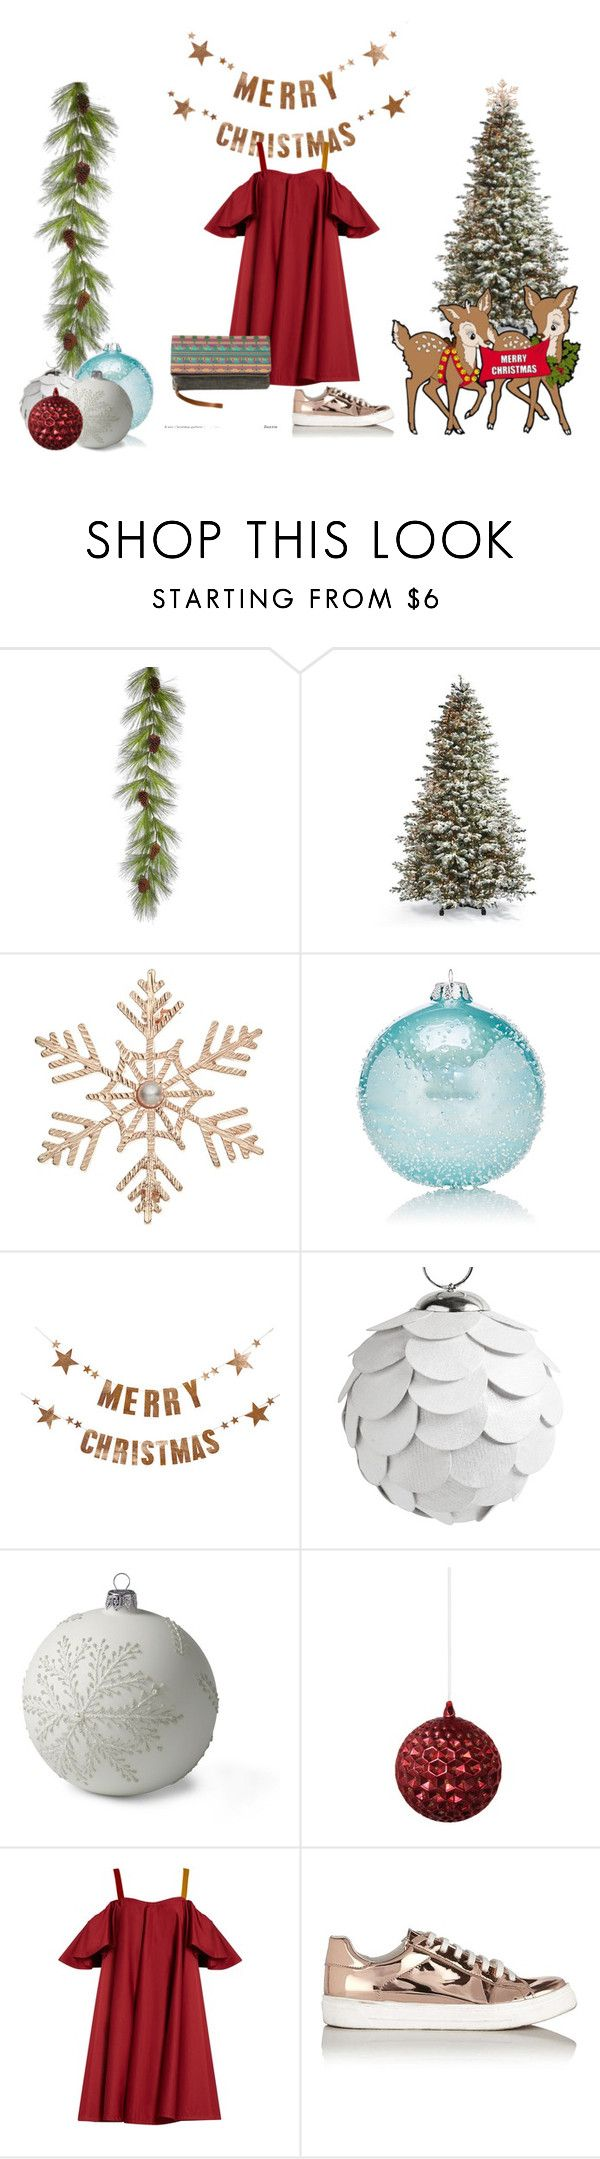 Sem título #488 by maroxy on Polyvore featuring Anna October, Miss Selfridge, John Lewis, Frontgate, Bloomingville, Lands' End, Winward, Shishi and Nordal